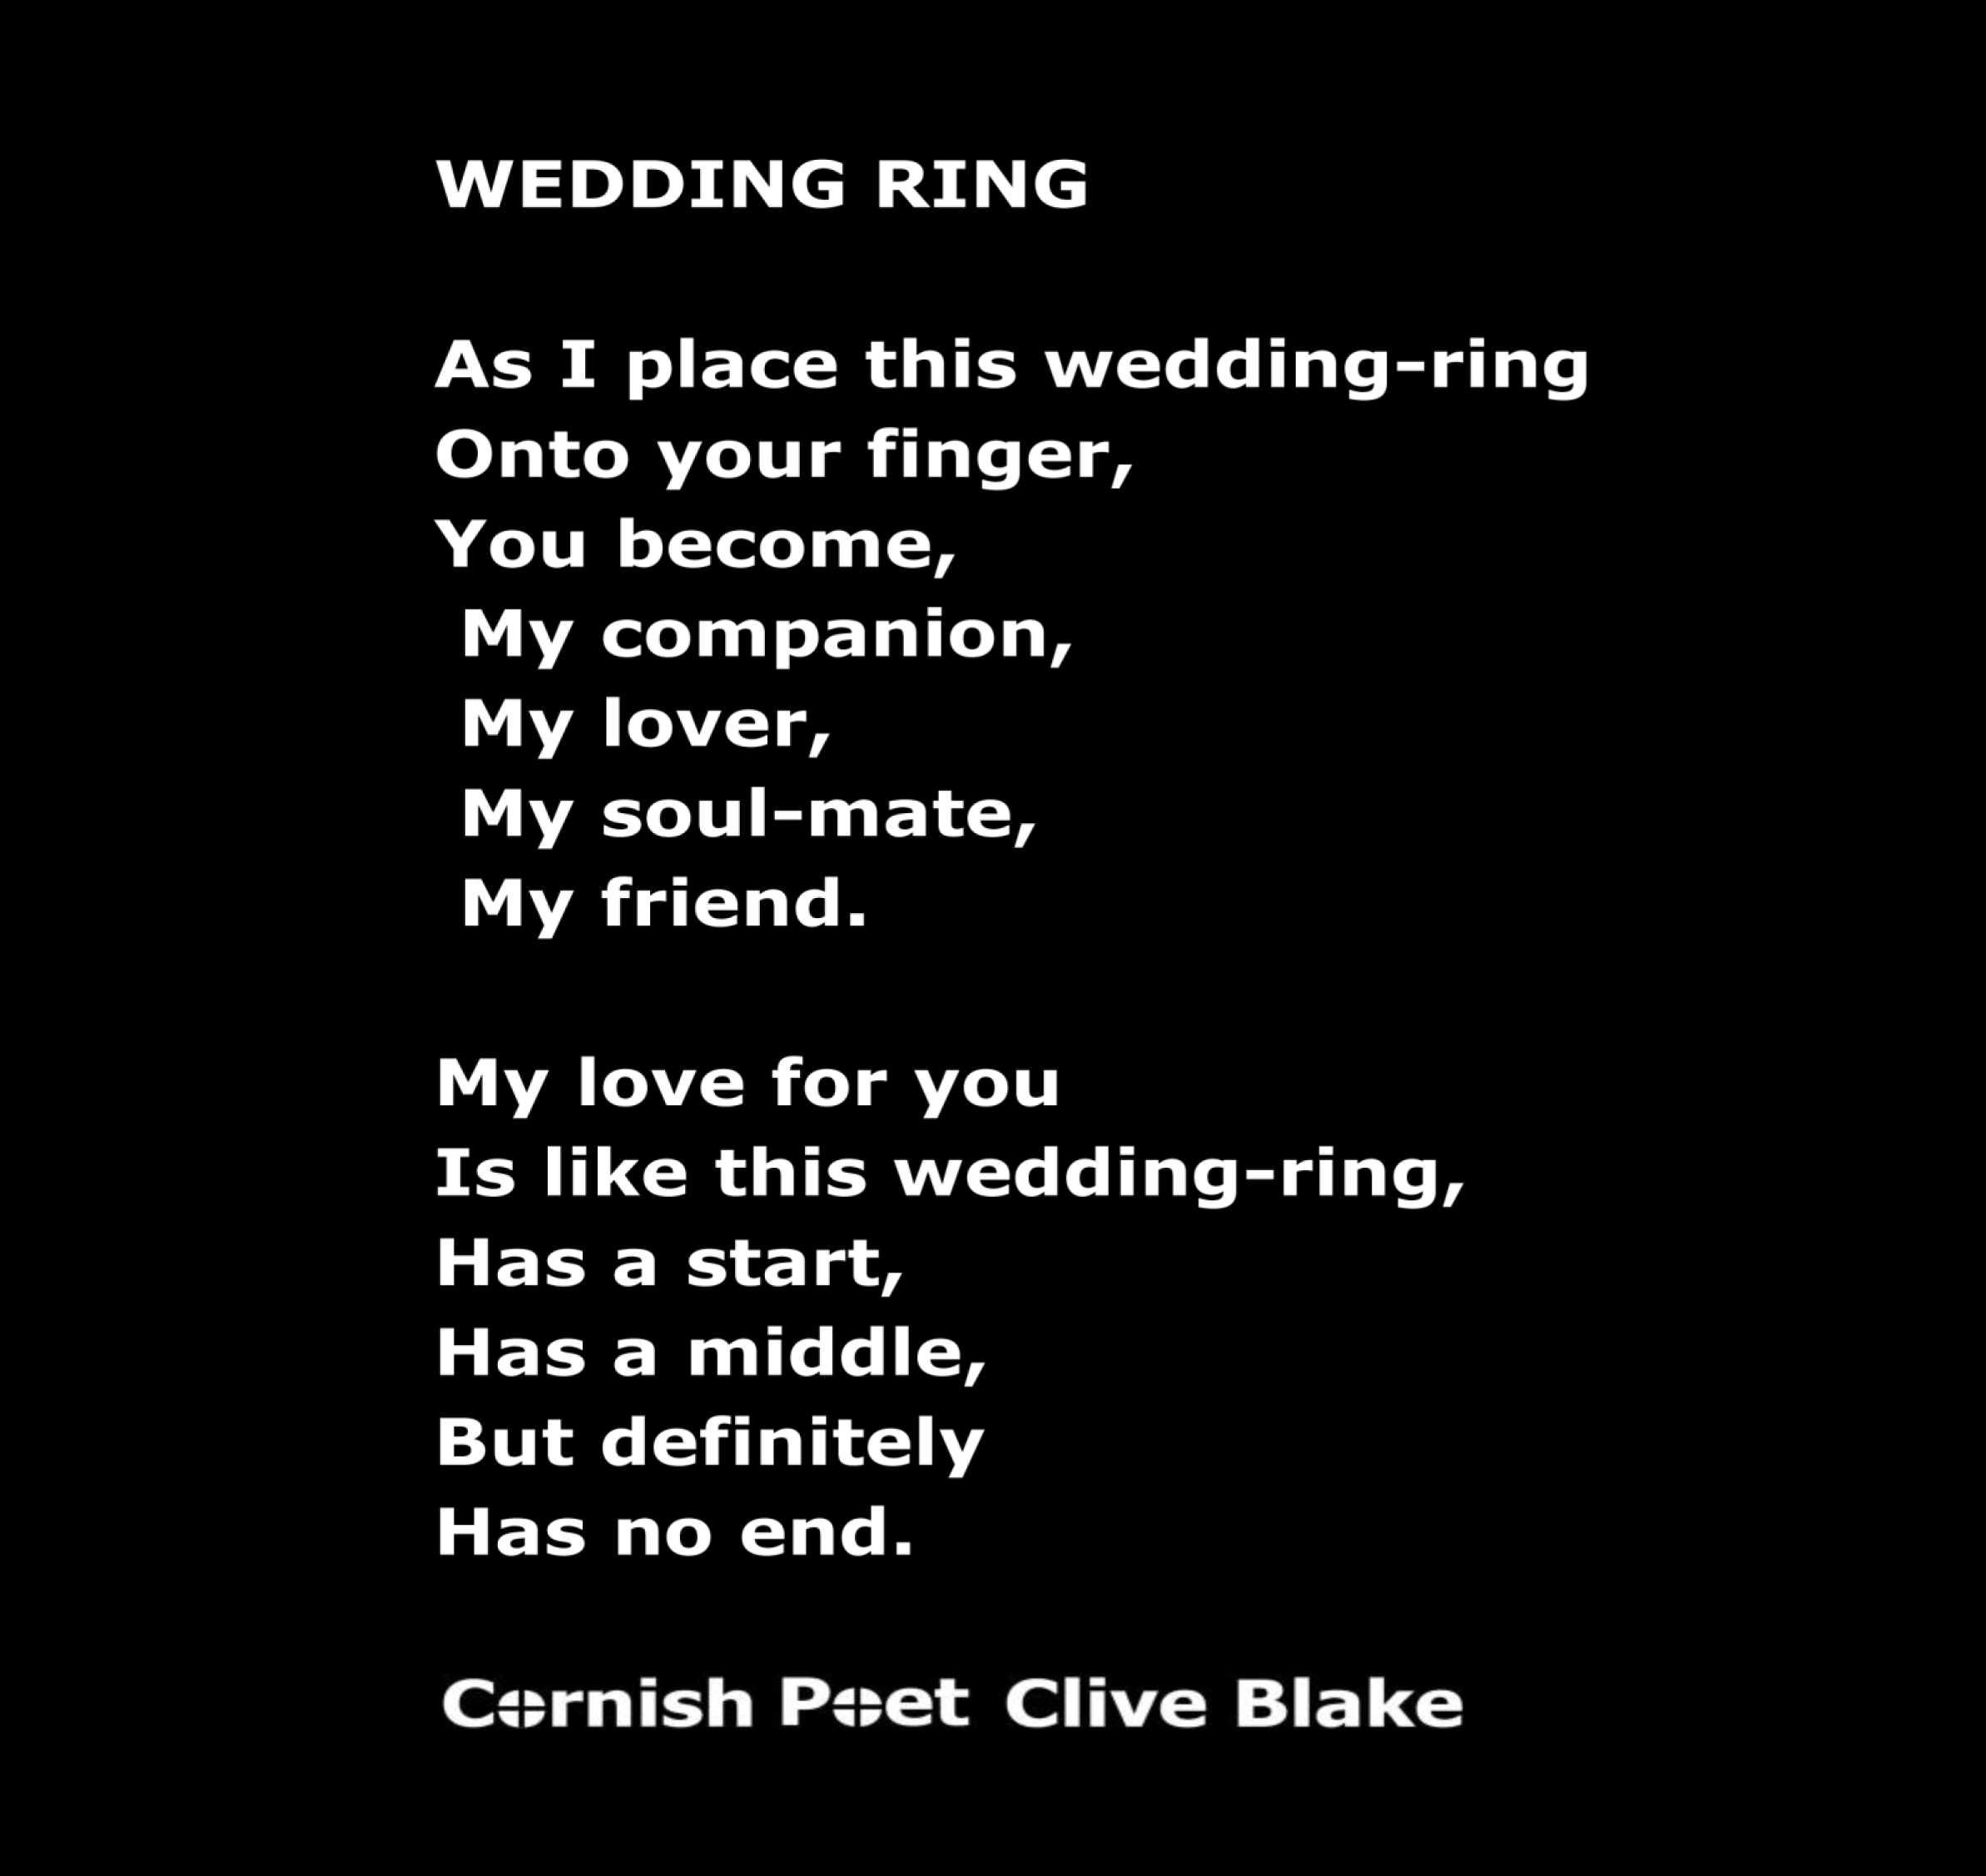 Wedding ring poem